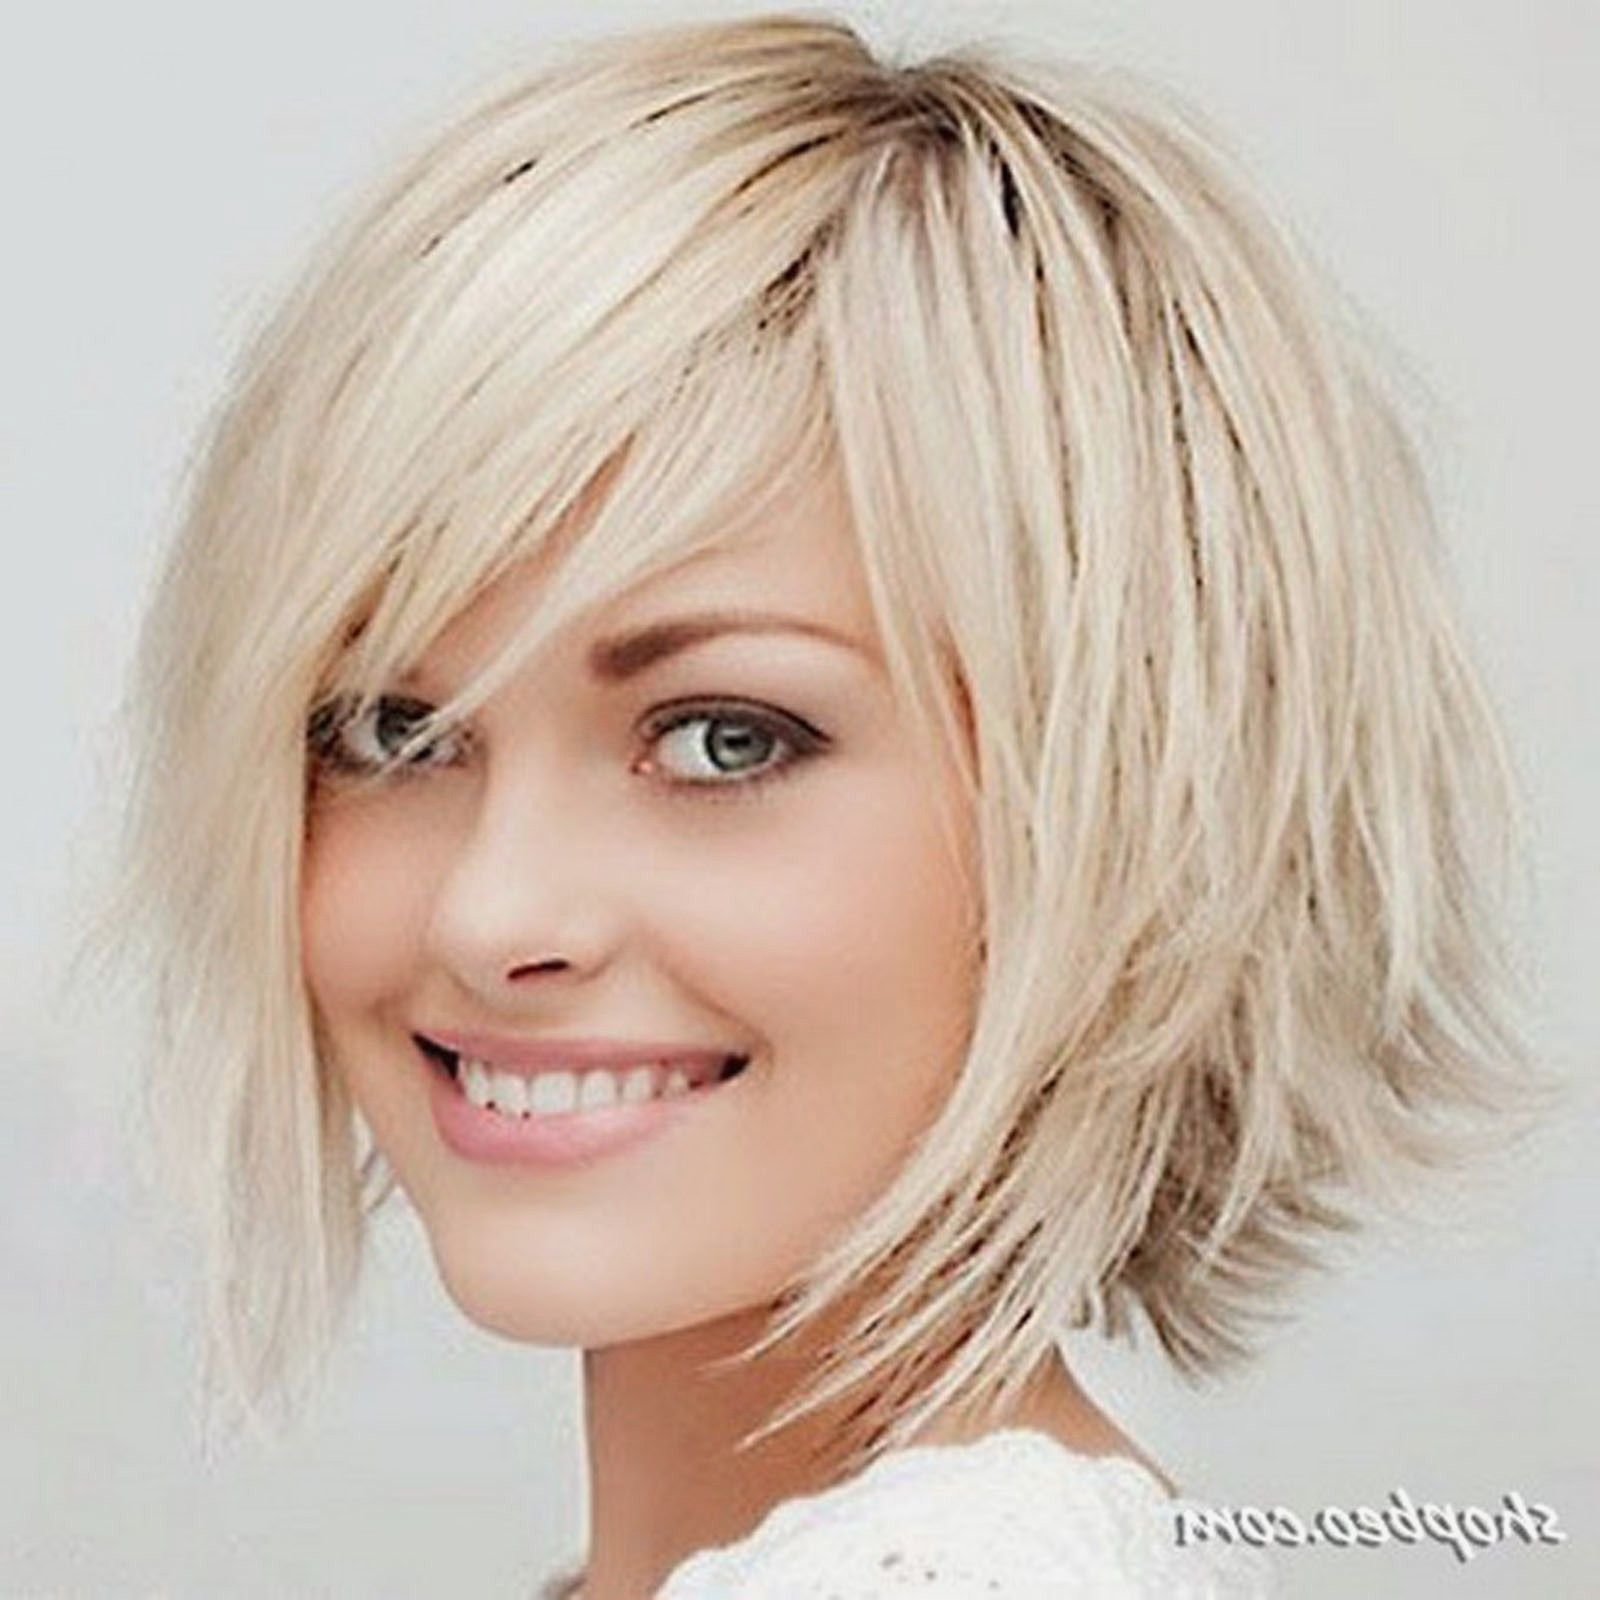 Low Maintenance Short Hairstyles Archives • Detroitairportshuttles Throughout Easy Maintenance Short Hairstyles (View 20 of 25)